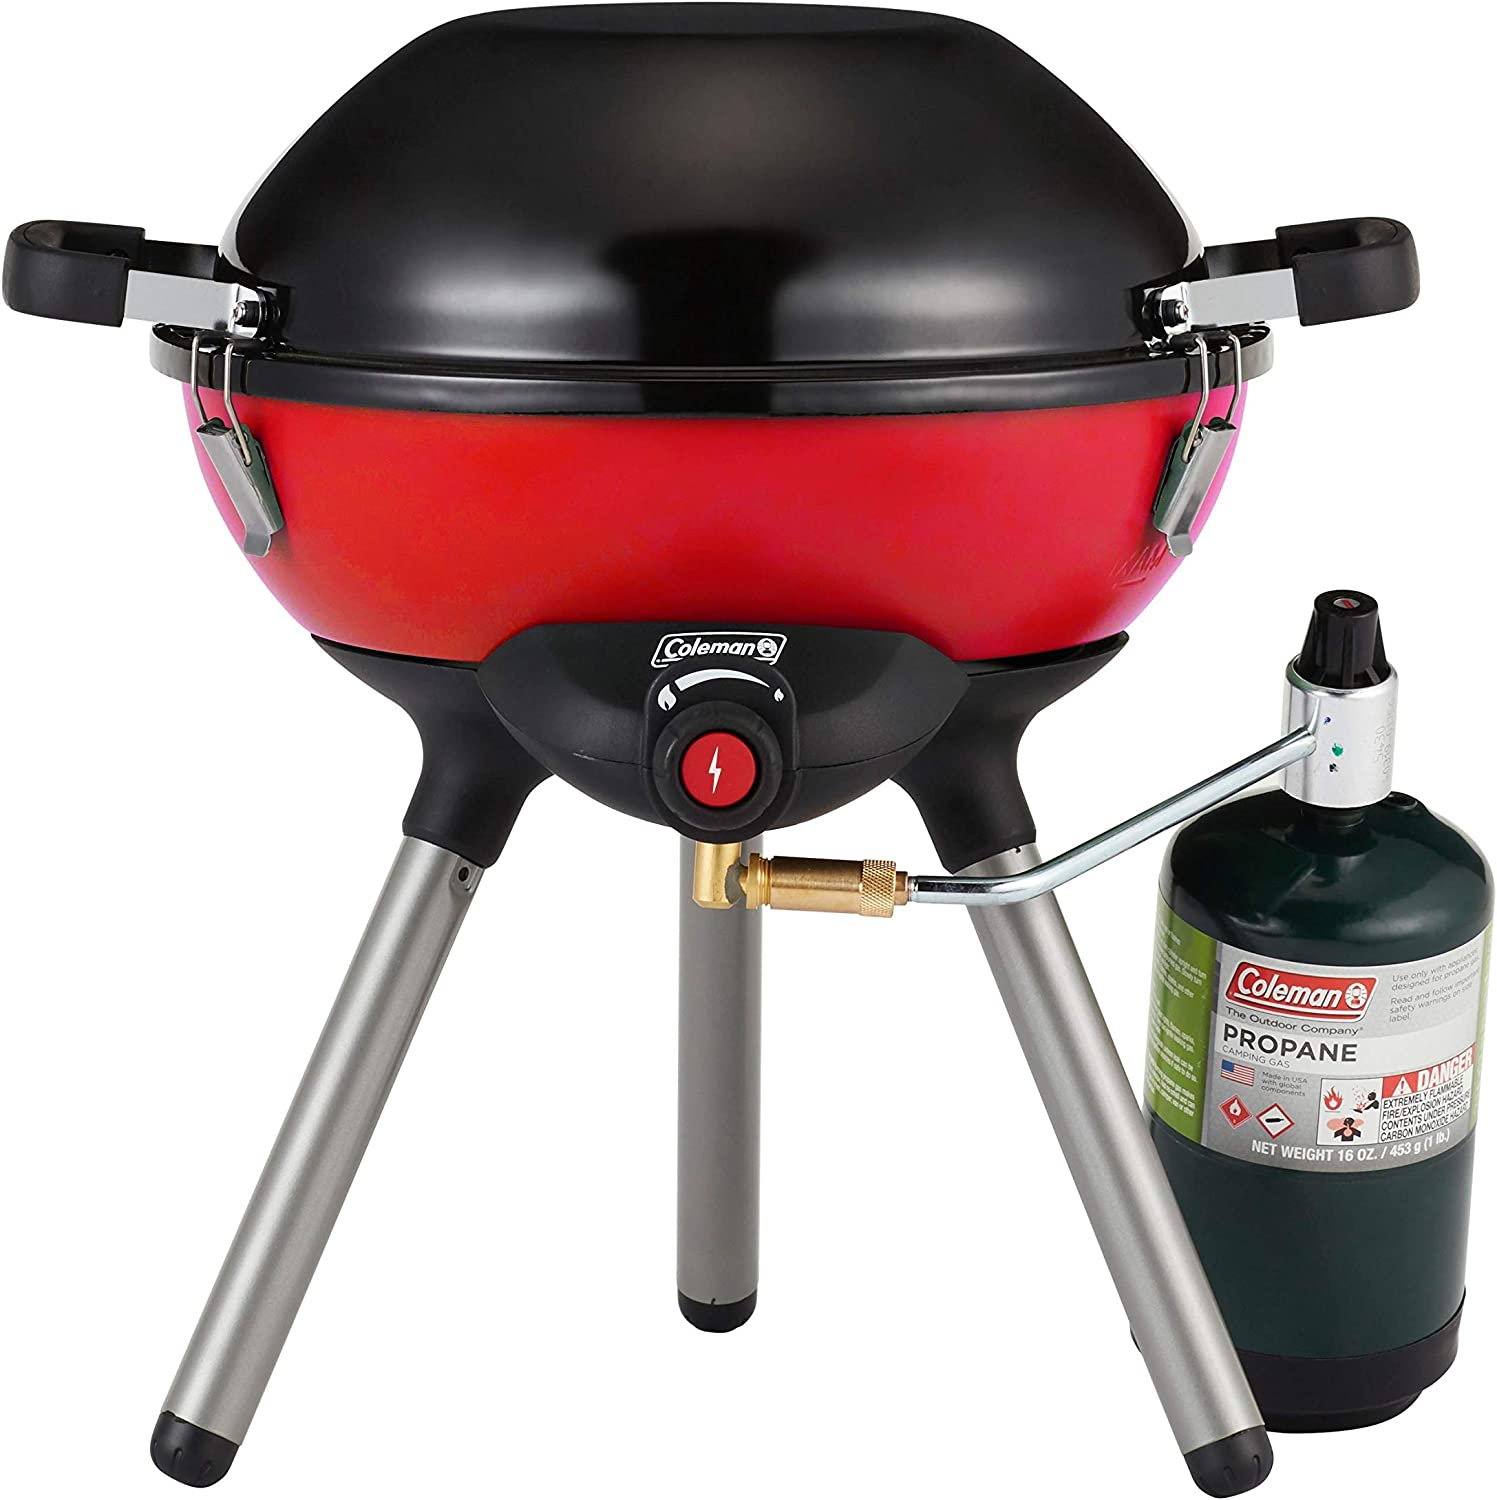 Coleman Gas Camping Stove | 4 in 1 Portable Propane Cooking System, Red